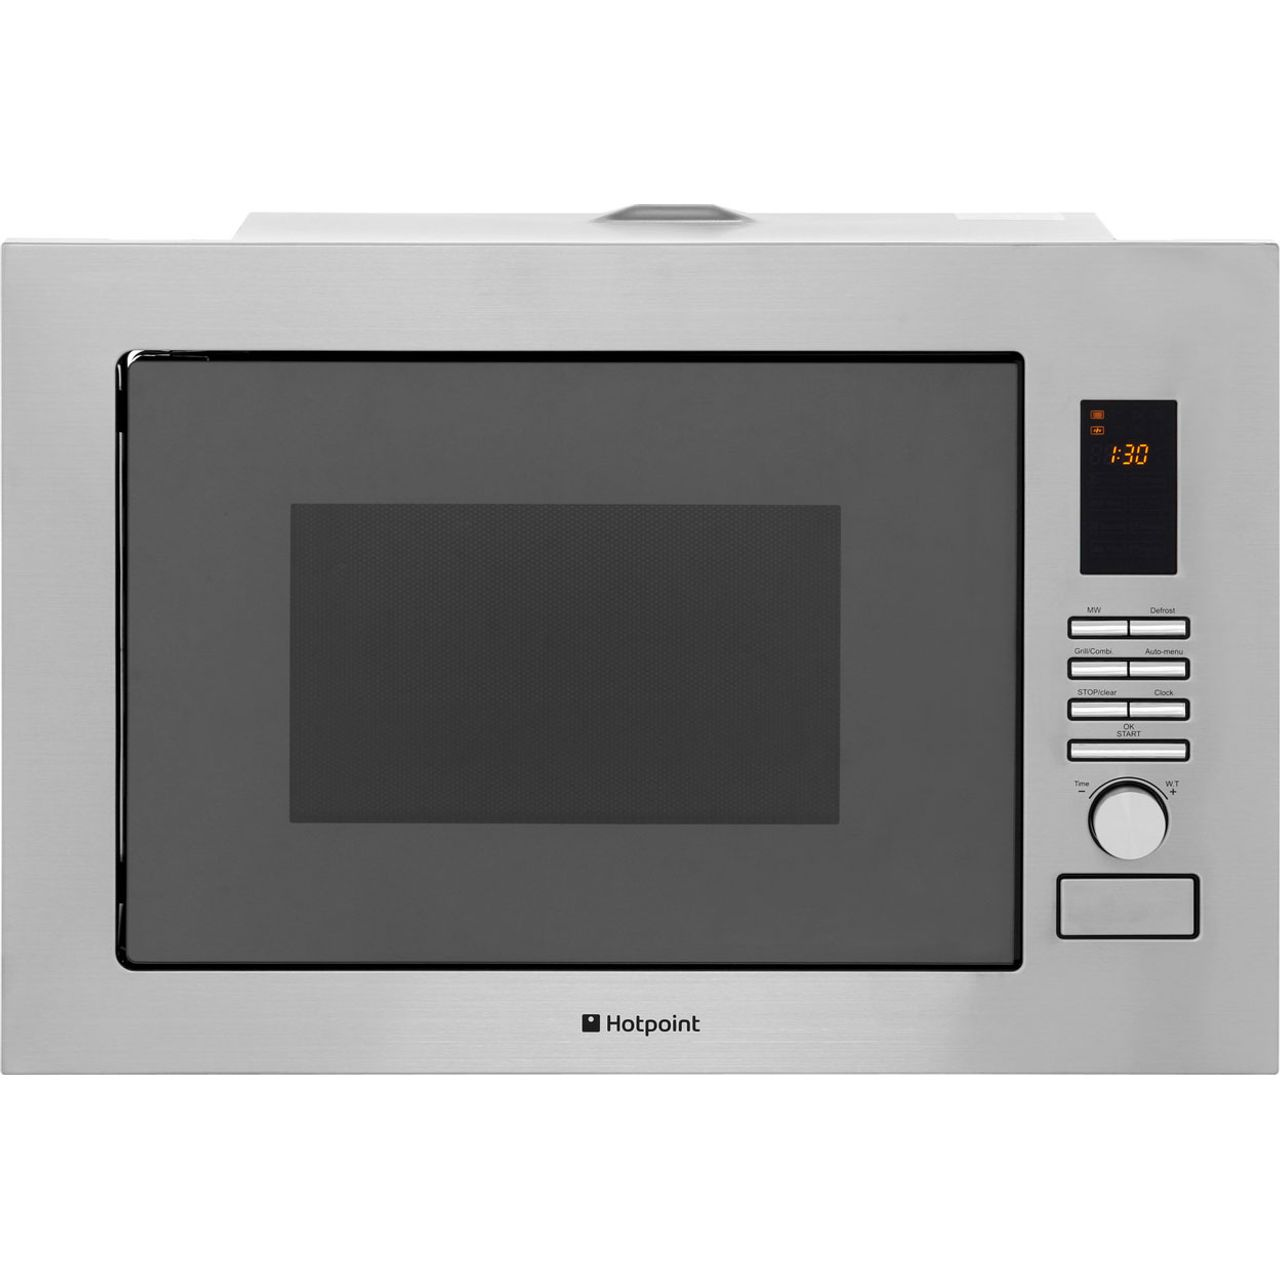 Hotpoint MWH222.1X Integrated Microwave Oven in Stainless Steel